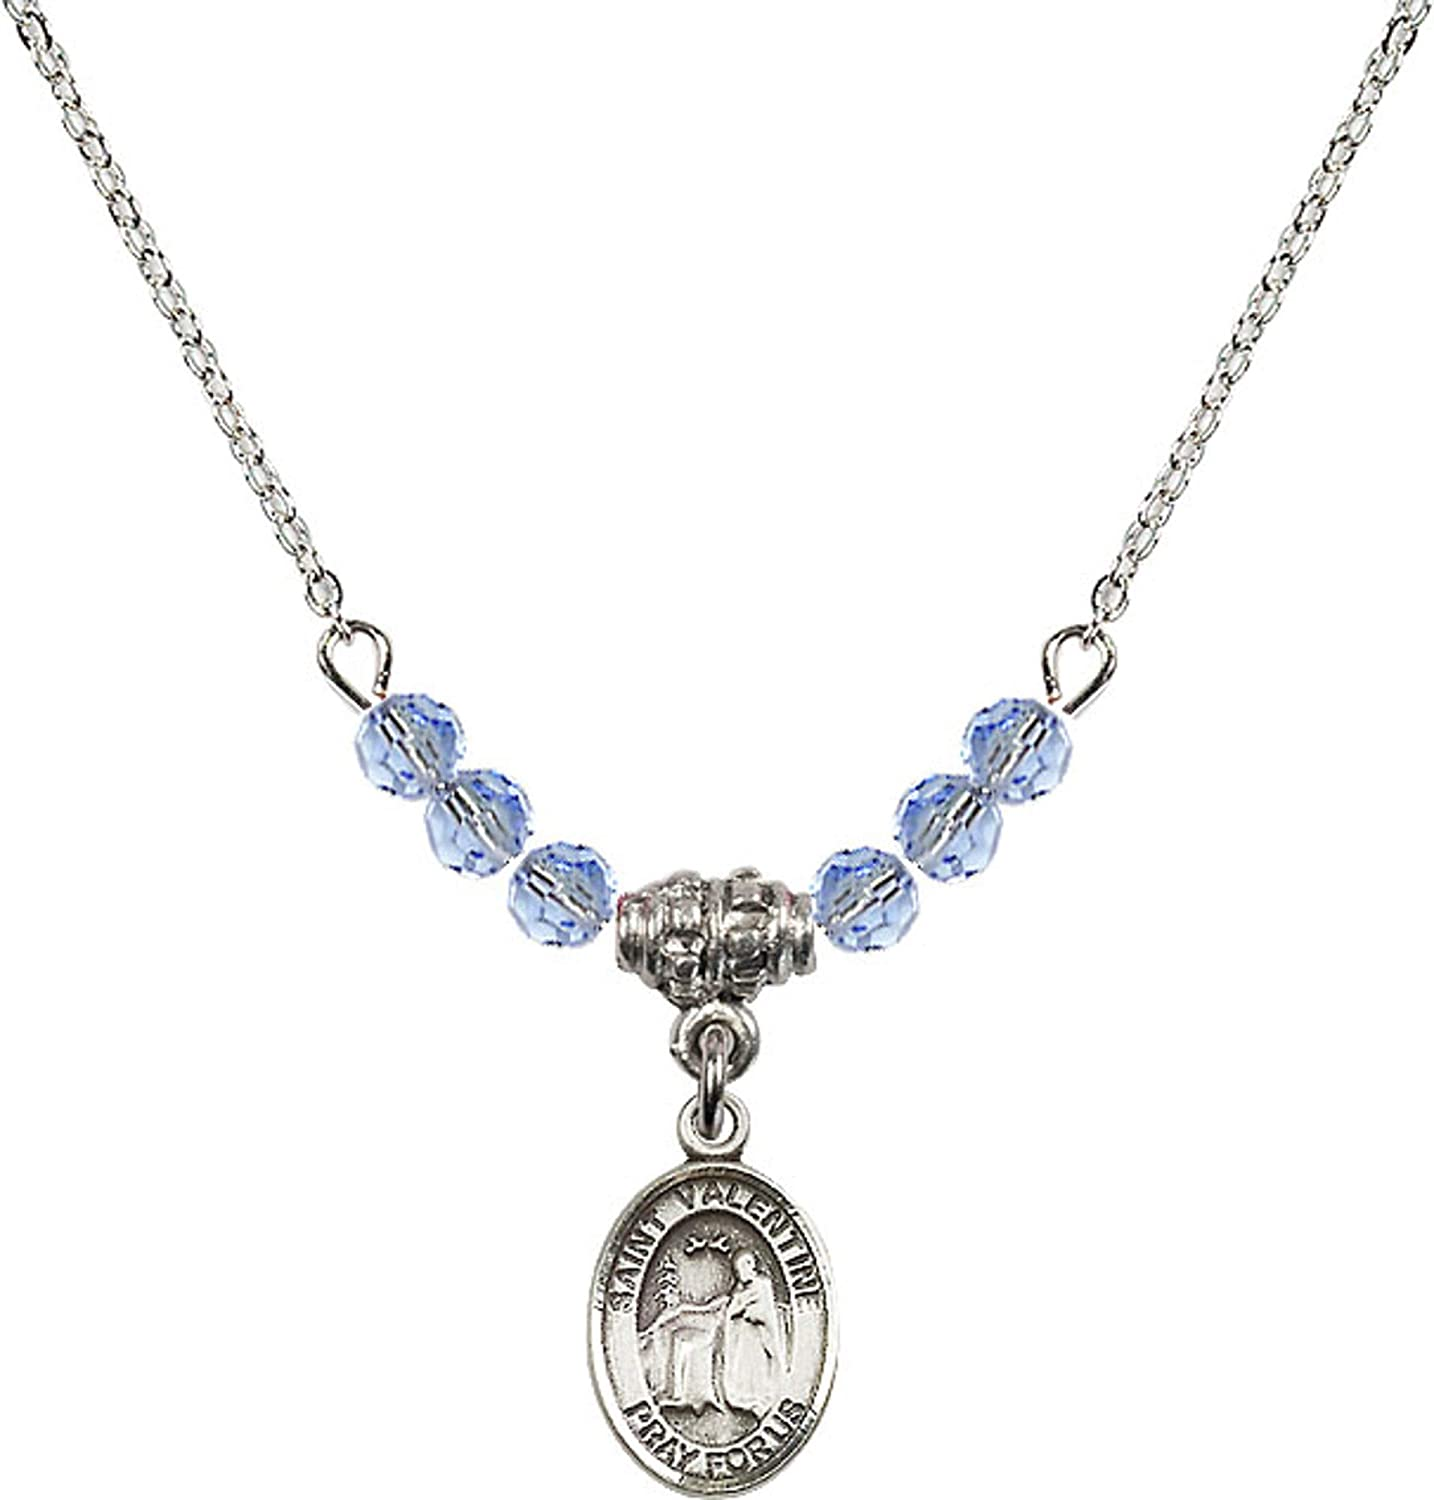 Bonyak Jewelry 18 Inch Rhodium Plated Necklace w// 4mm Light Blue September Birth Month Stone Beads and Saint Valentine of Rome Charm